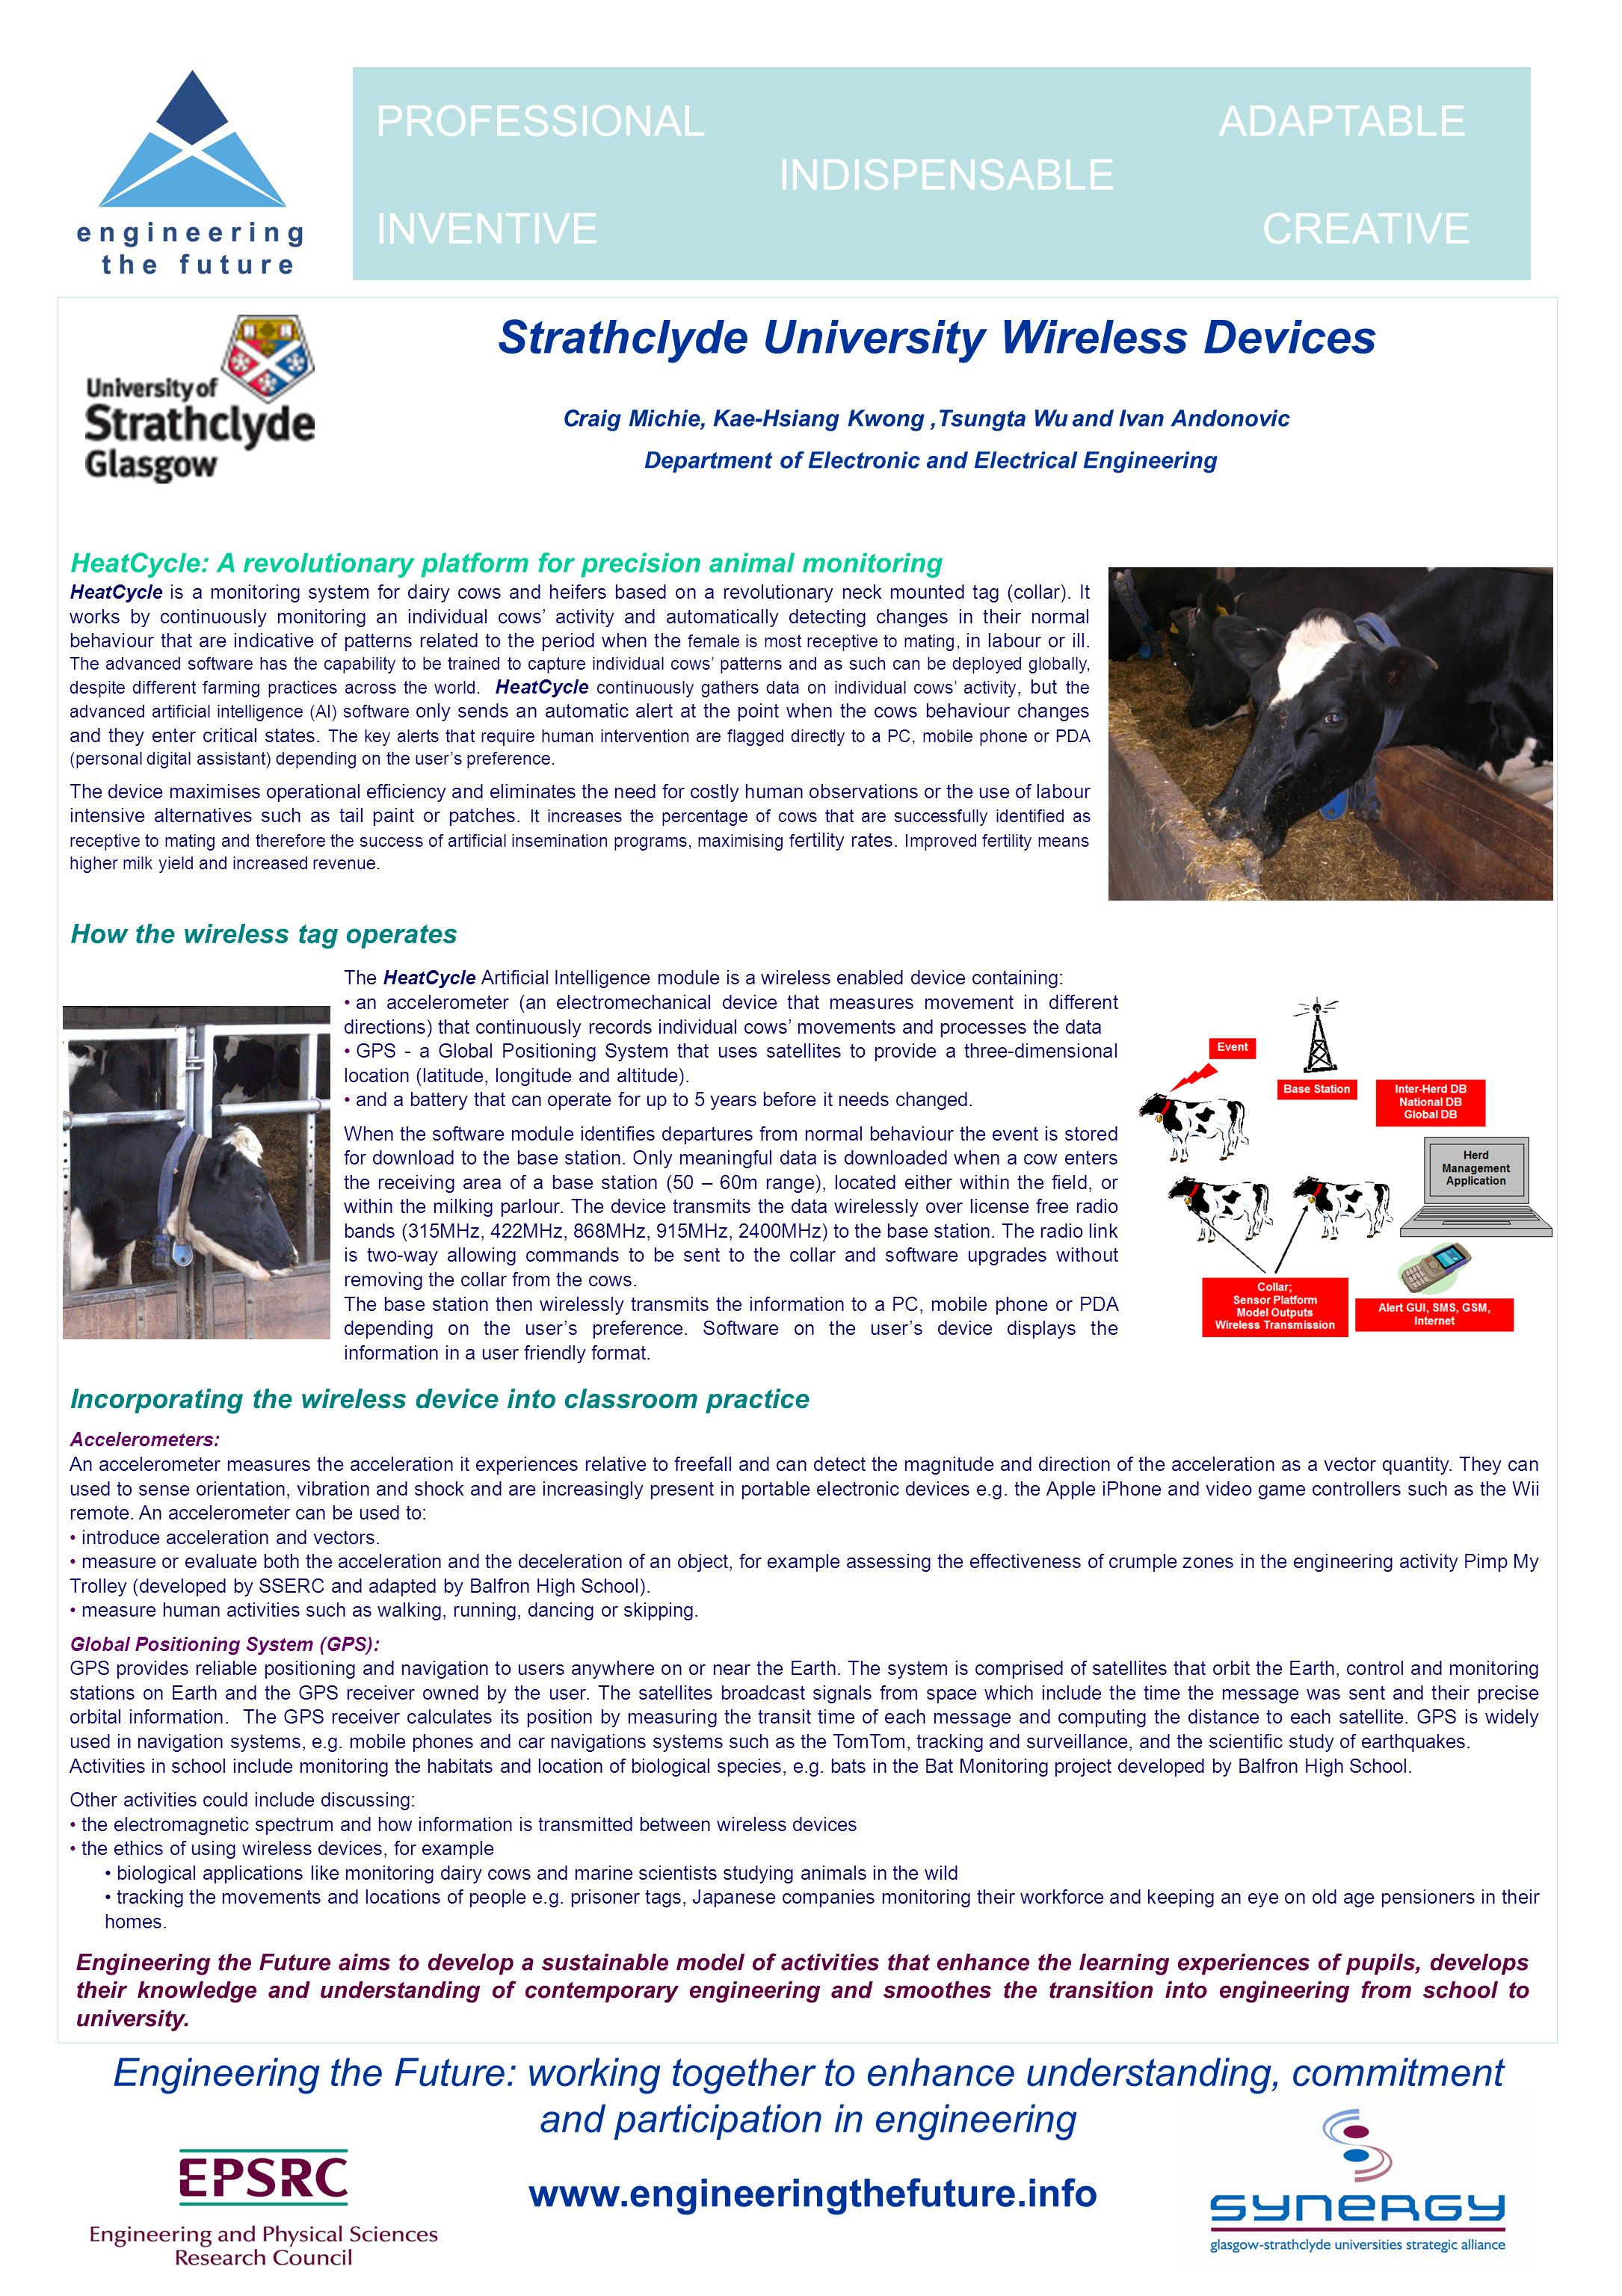 www.engineeringthefuture.info PROFESSIONAL ADAPTABLE INDISPENSABLE INVENTIVE CREATIVE Engineering the Future: working together to enhance understanding, commitment and participation in engineering Strathclyde University Wireless Devices HeatCycle: A revolutionary platform for precision animal monitoring HeatCycle is a monitoring system for dairy cows and heifers based on a revolutionary neck mounted tag (collar).